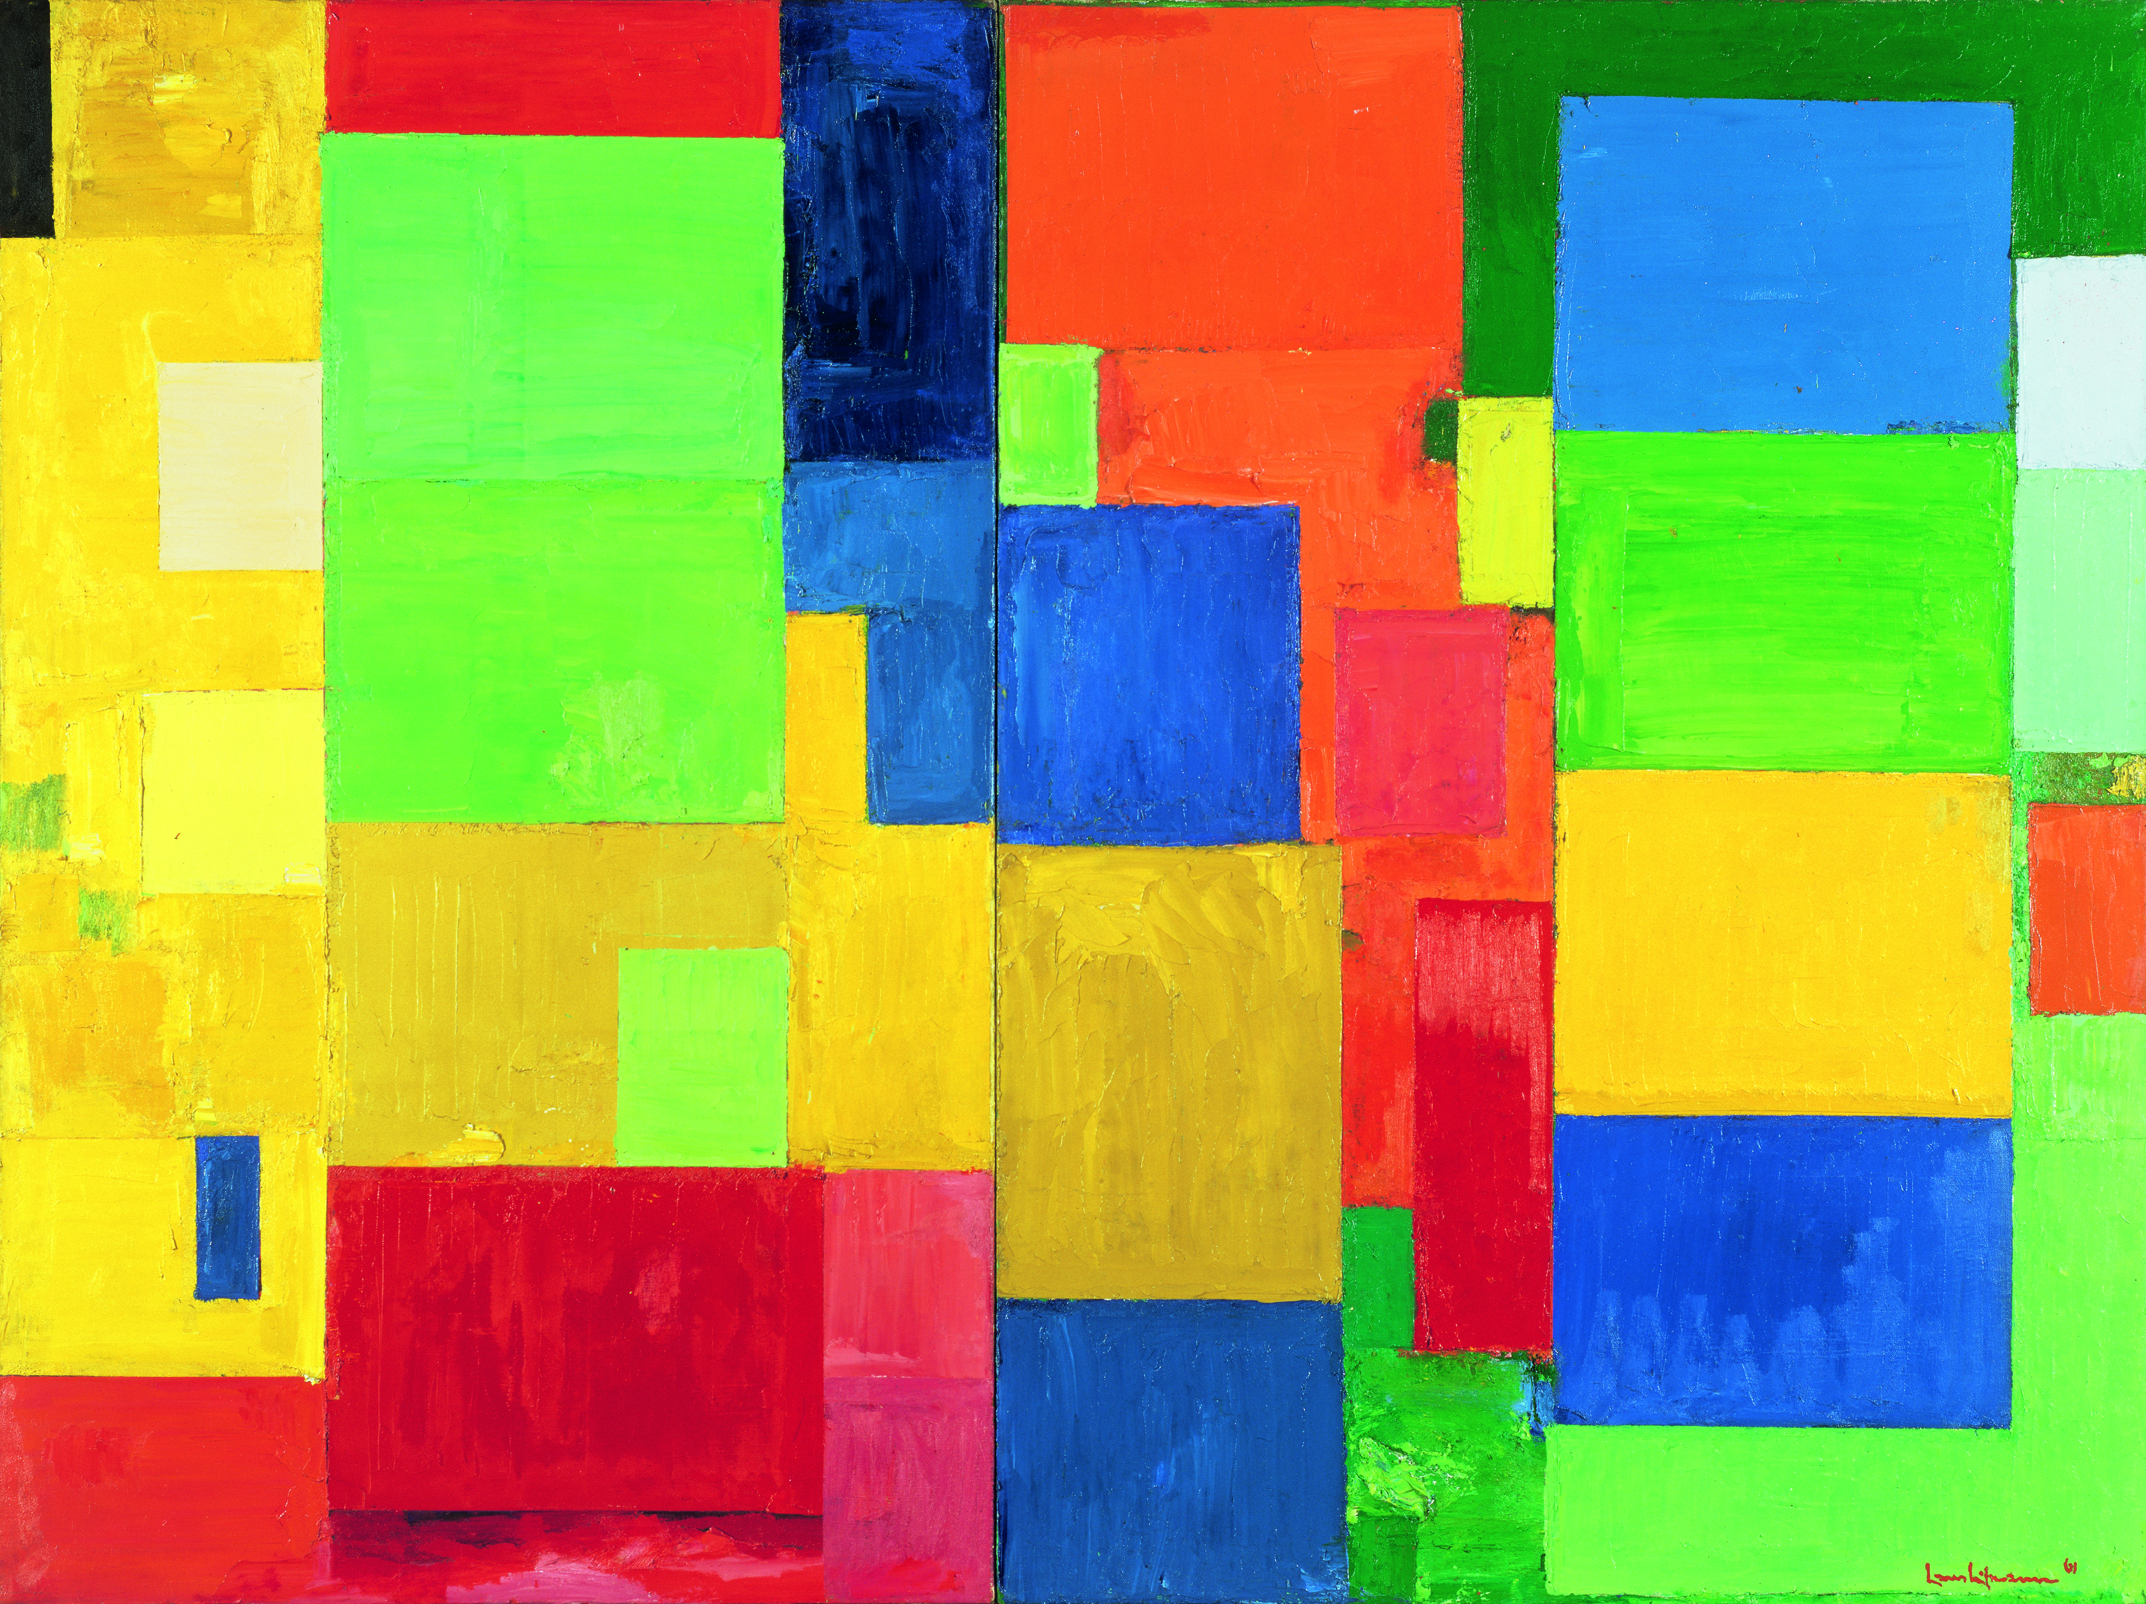 "Combinable Wall I and II , 1961 Oil on canvas 84 1/2 x 112 1/2 in. (214.6 x 285.8 cm) University of California, Berkeley Art Museum & Pacific Film Archive. Gift of the artist (1963.10) The Trustees of the Renate, Hans and Maria Hofmann Trust thank the Regents of the University of California for the use of this image        Normal   0             false   false   false     EN-US   X-NONE   X-NONE                                                                                                                                                                                                                                                                                                                                                                           /* Style Definitions */  table.MsoNormalTable 	{mso-style-name:""Table Normal""; 	mso-tstyle-rowband-size:0; 	mso-tstyle-colband-size:0; 	mso-style-noshow:yes; 	mso-style-priority:99; 	mso-style-parent:""""; 	mso-padding-alt:0in 5.4pt 0in 5.4pt; 	mso-para-margin:0in; 	mso-para-margin-bottom:.0001pt; 	mso-pagination:widow-orphan; 	font-size:11.0pt; 	font-family:""Calibri"",""sans-serif""; 	mso-ascii-font-family:Calibri; 	mso-ascii-theme-font:minor-latin; 	mso-hansi-font-family:Calibri; 	mso-hansi-theme-font:minor-latin;}"